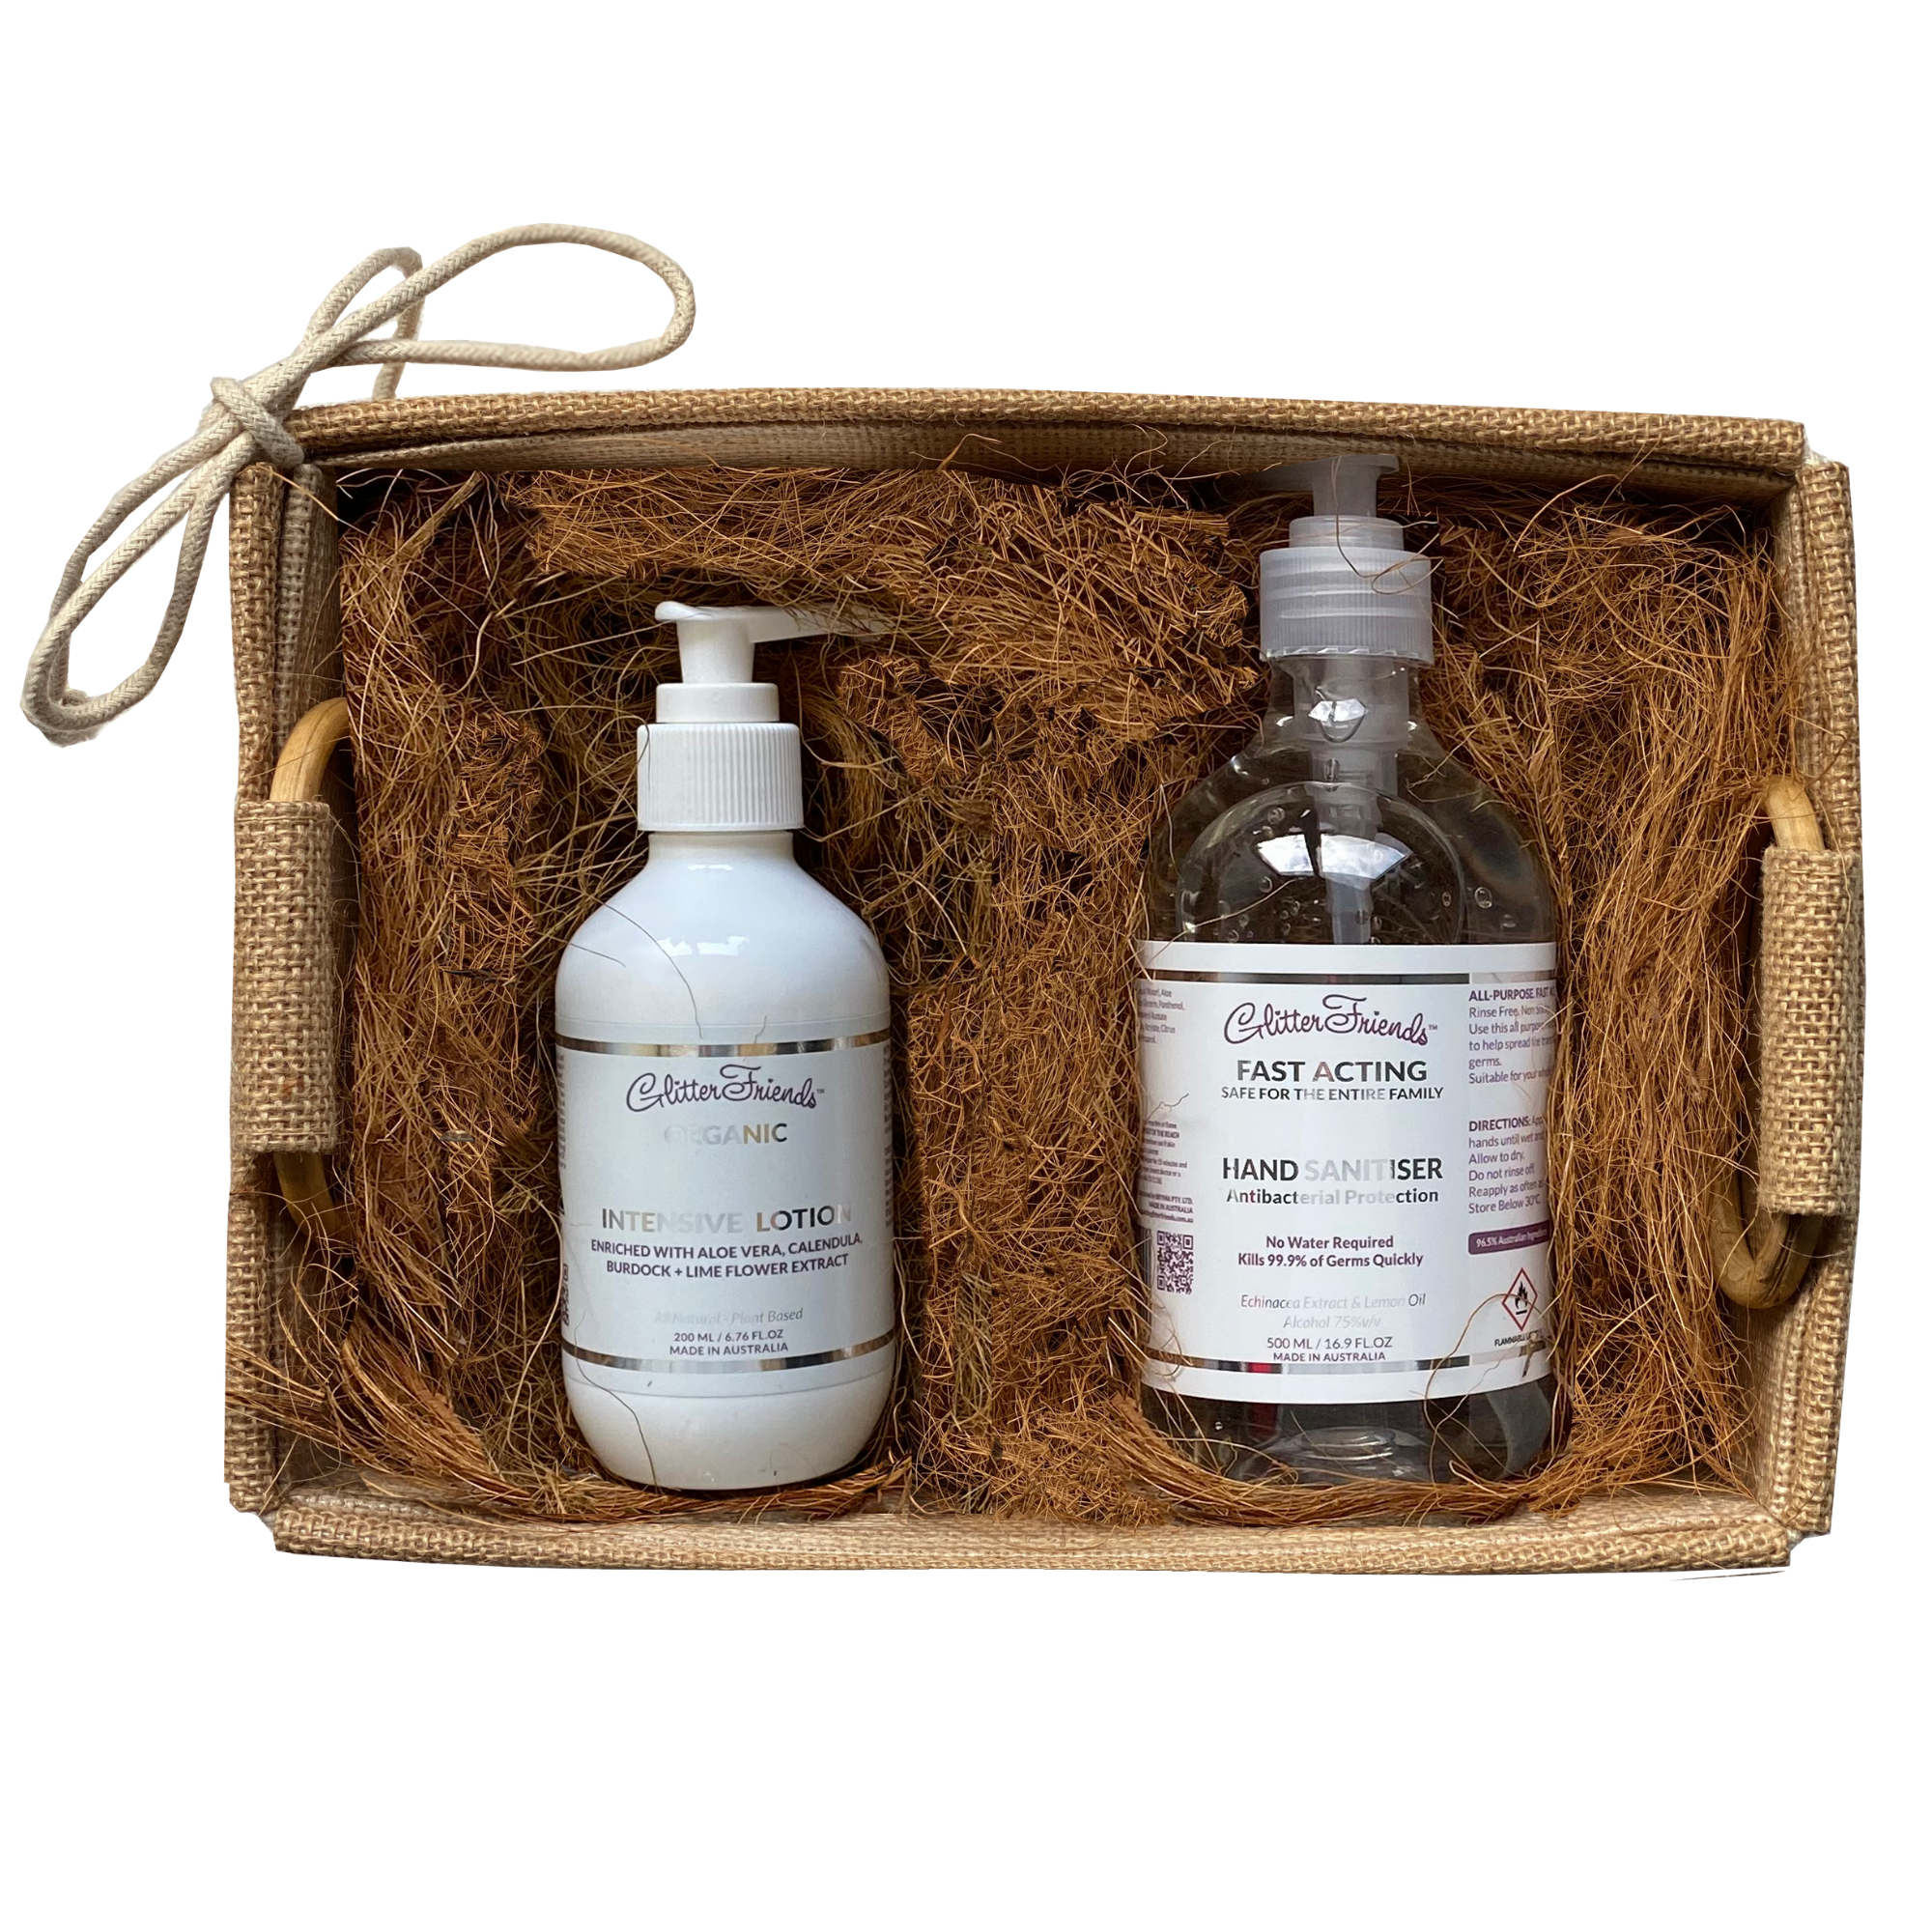 Hands and Body need love, care and attention more so now than ever before! The perfect gift to Cleanse, Treat and Protect.